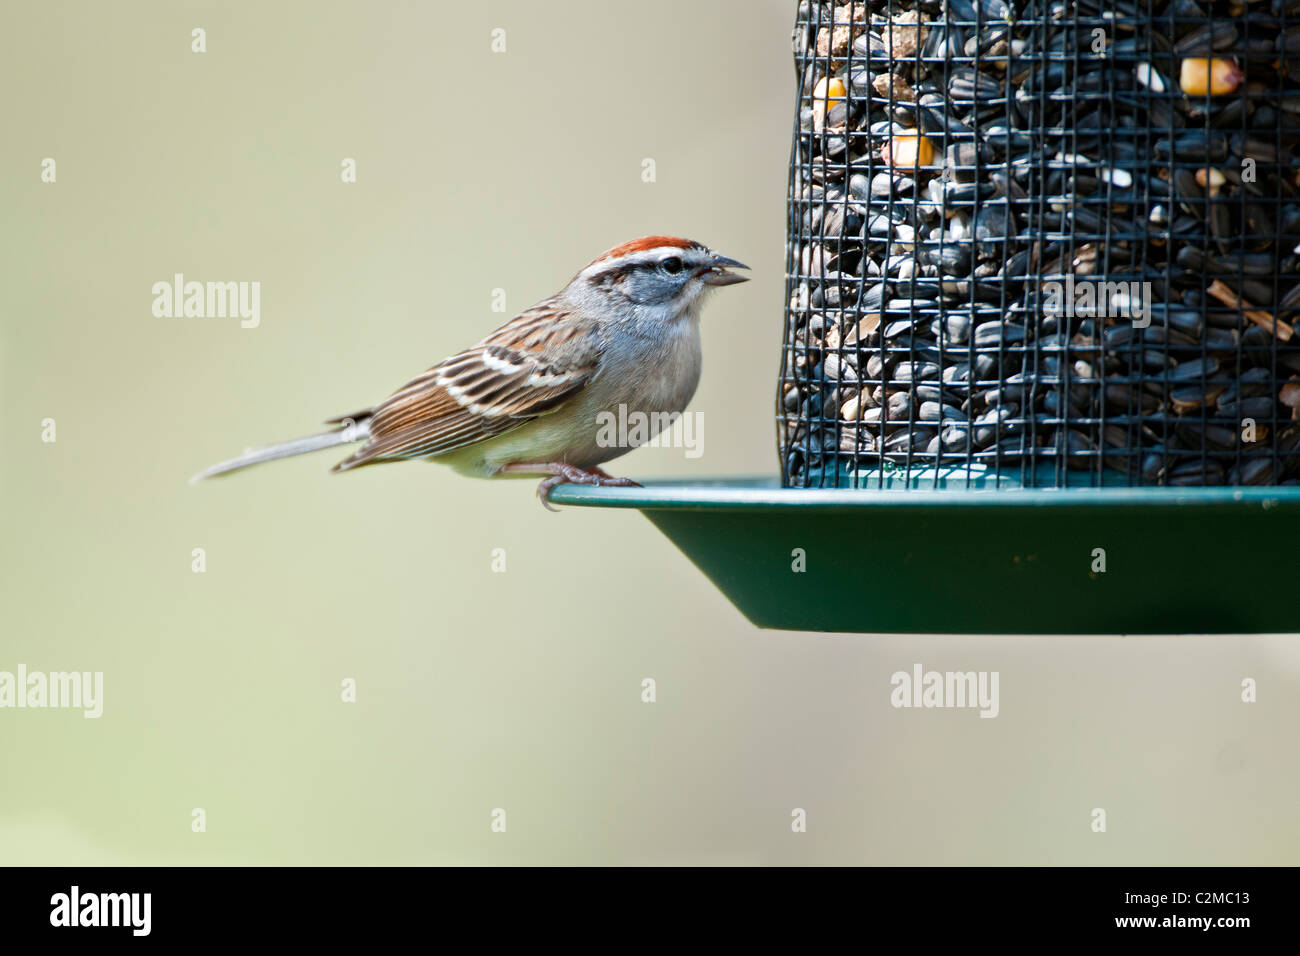 Chipping Sparrow using a seed feeder - Stock Image